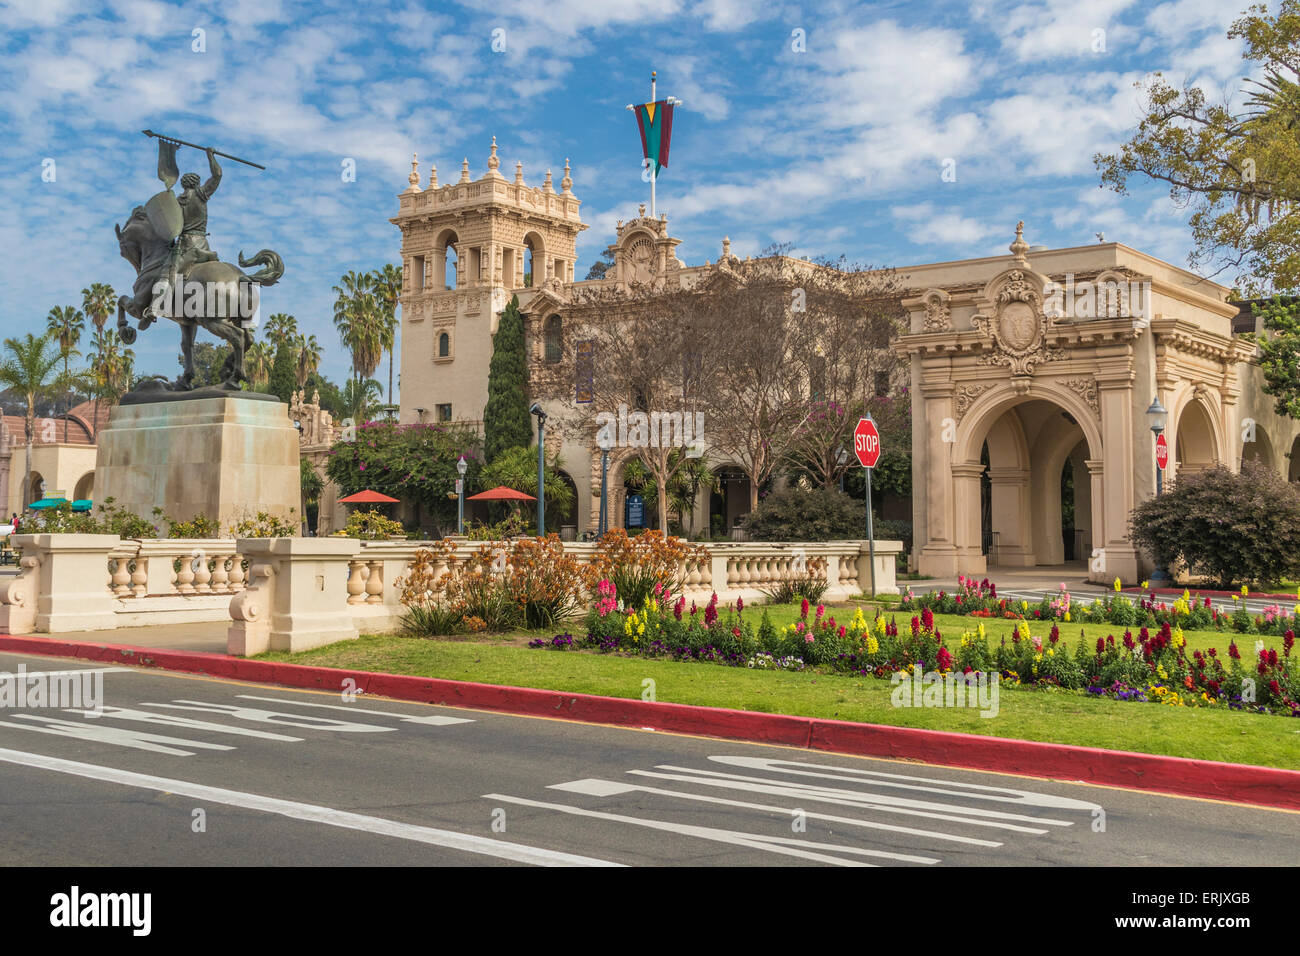 Balboa Park in San Diego, at 1200 acres, is the largest urban cultural park in the United States. Stock Photo